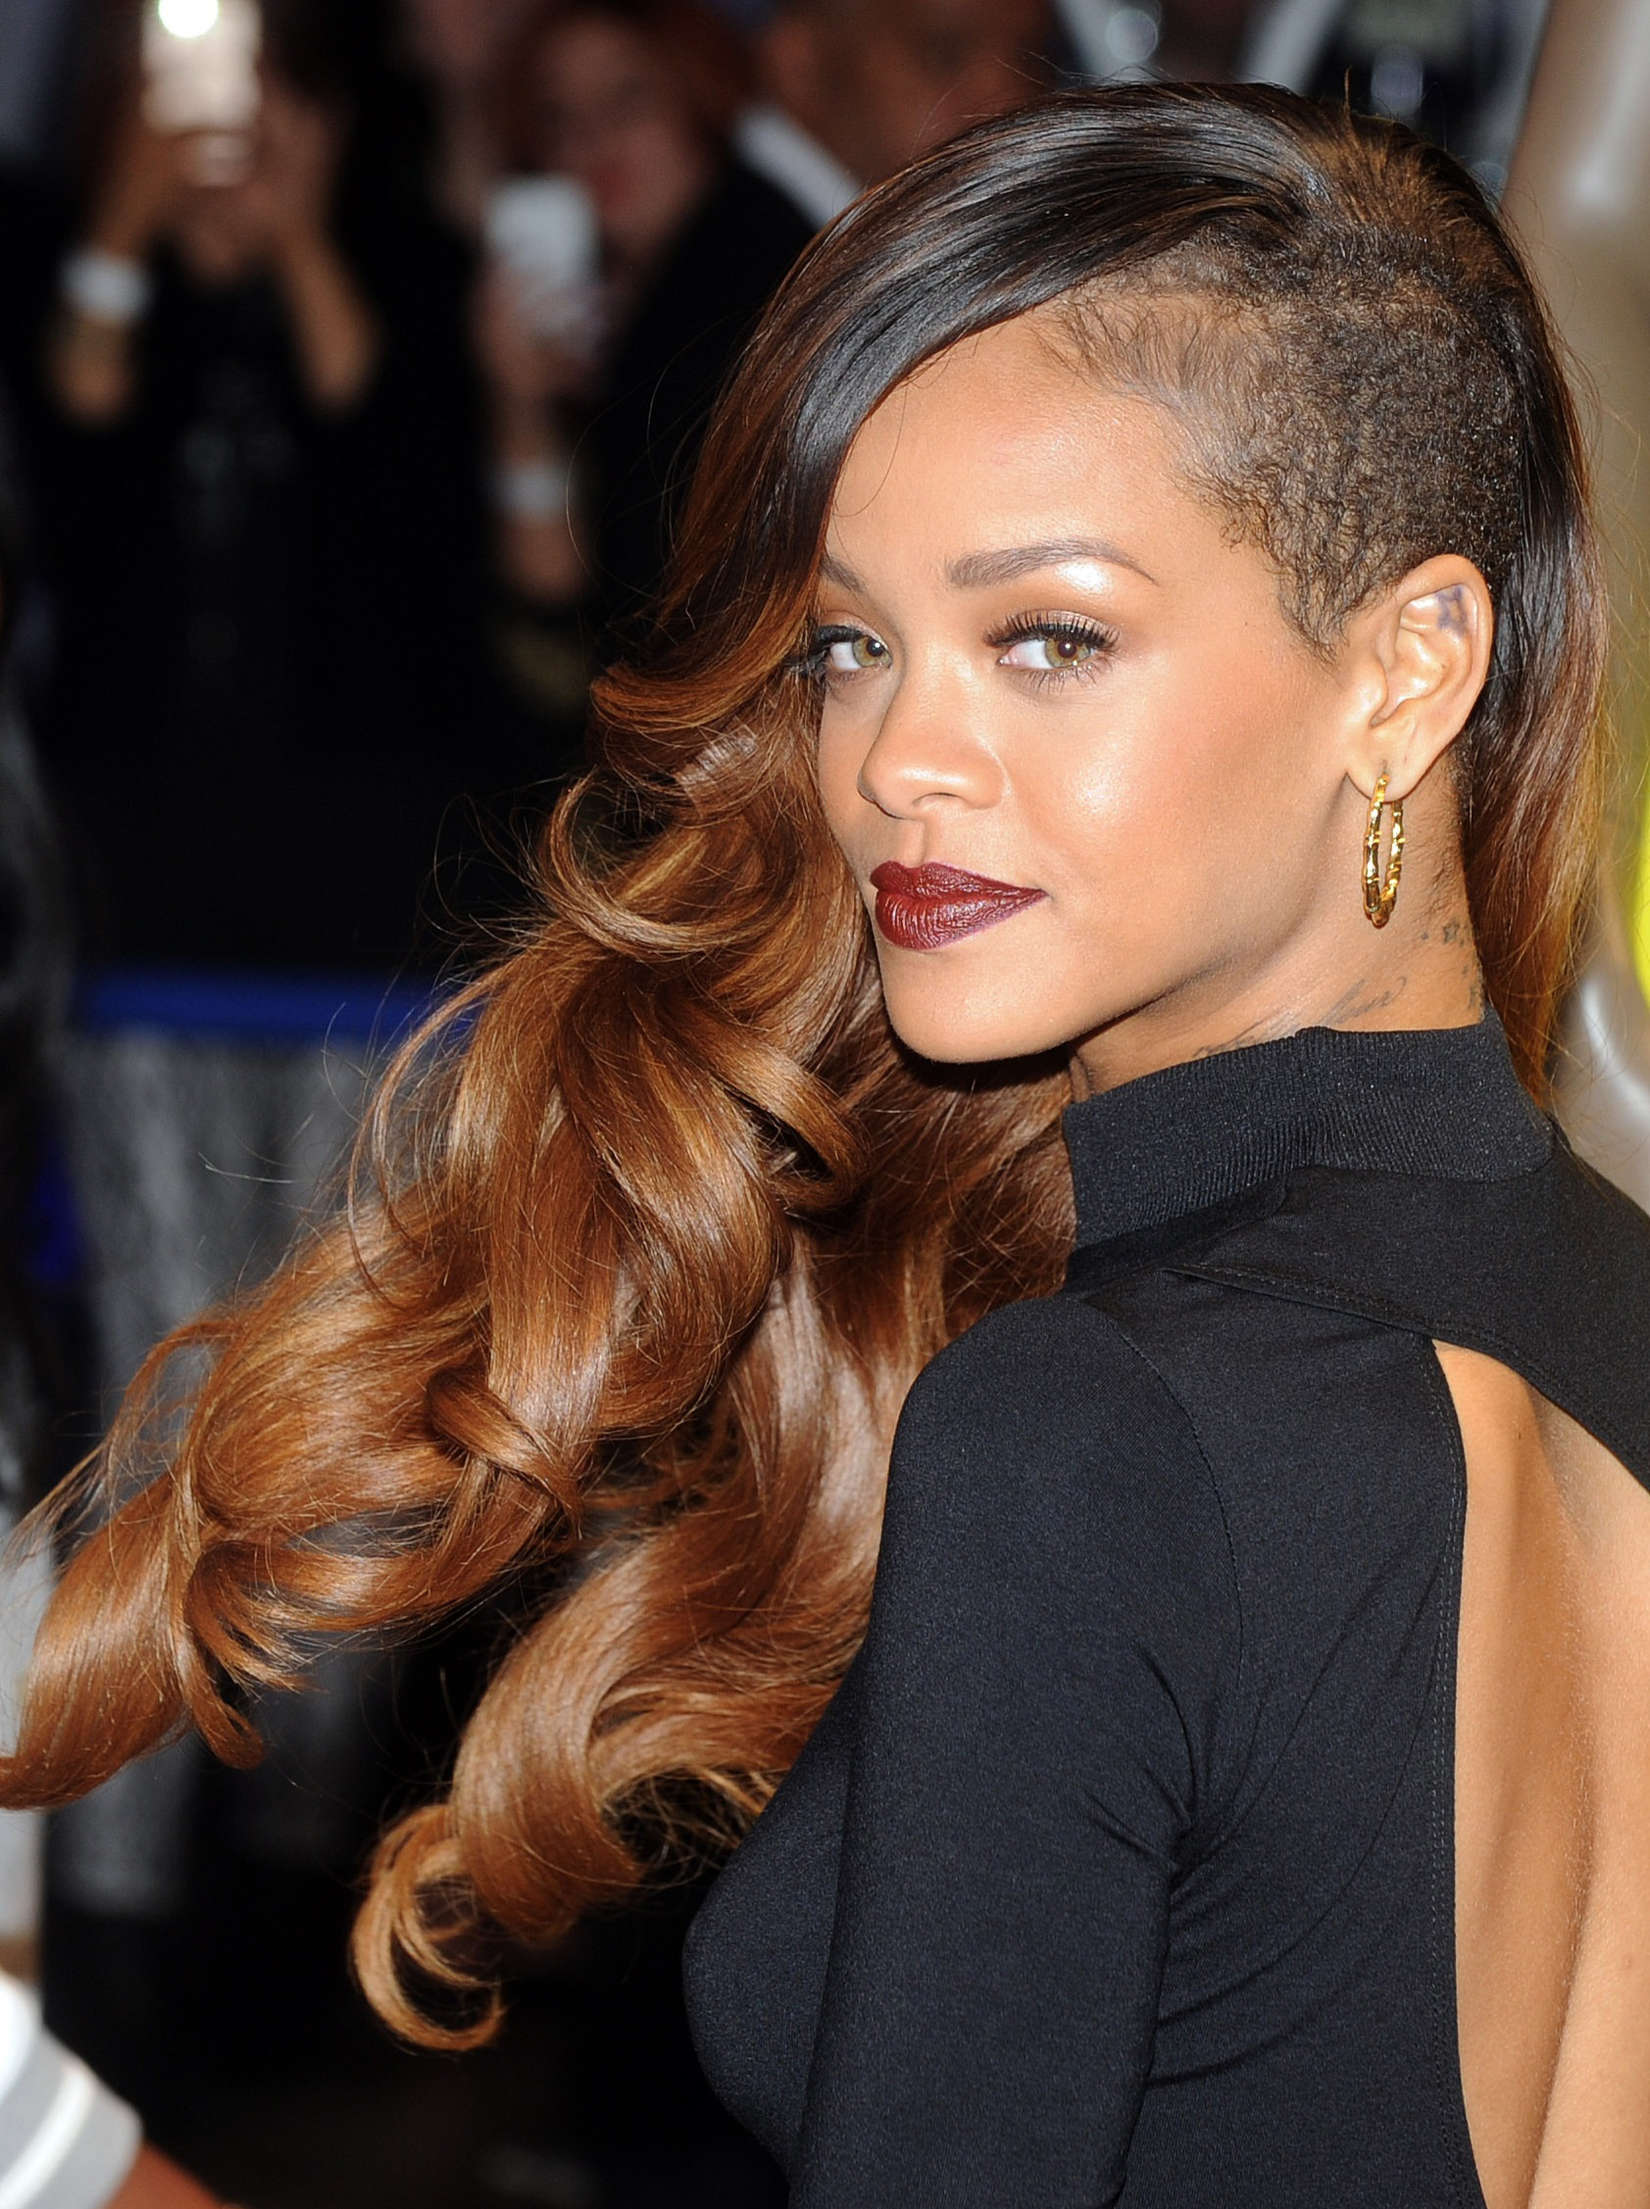 Rihanna – River Island 2013 Collection Launch -05 – GotCeleb